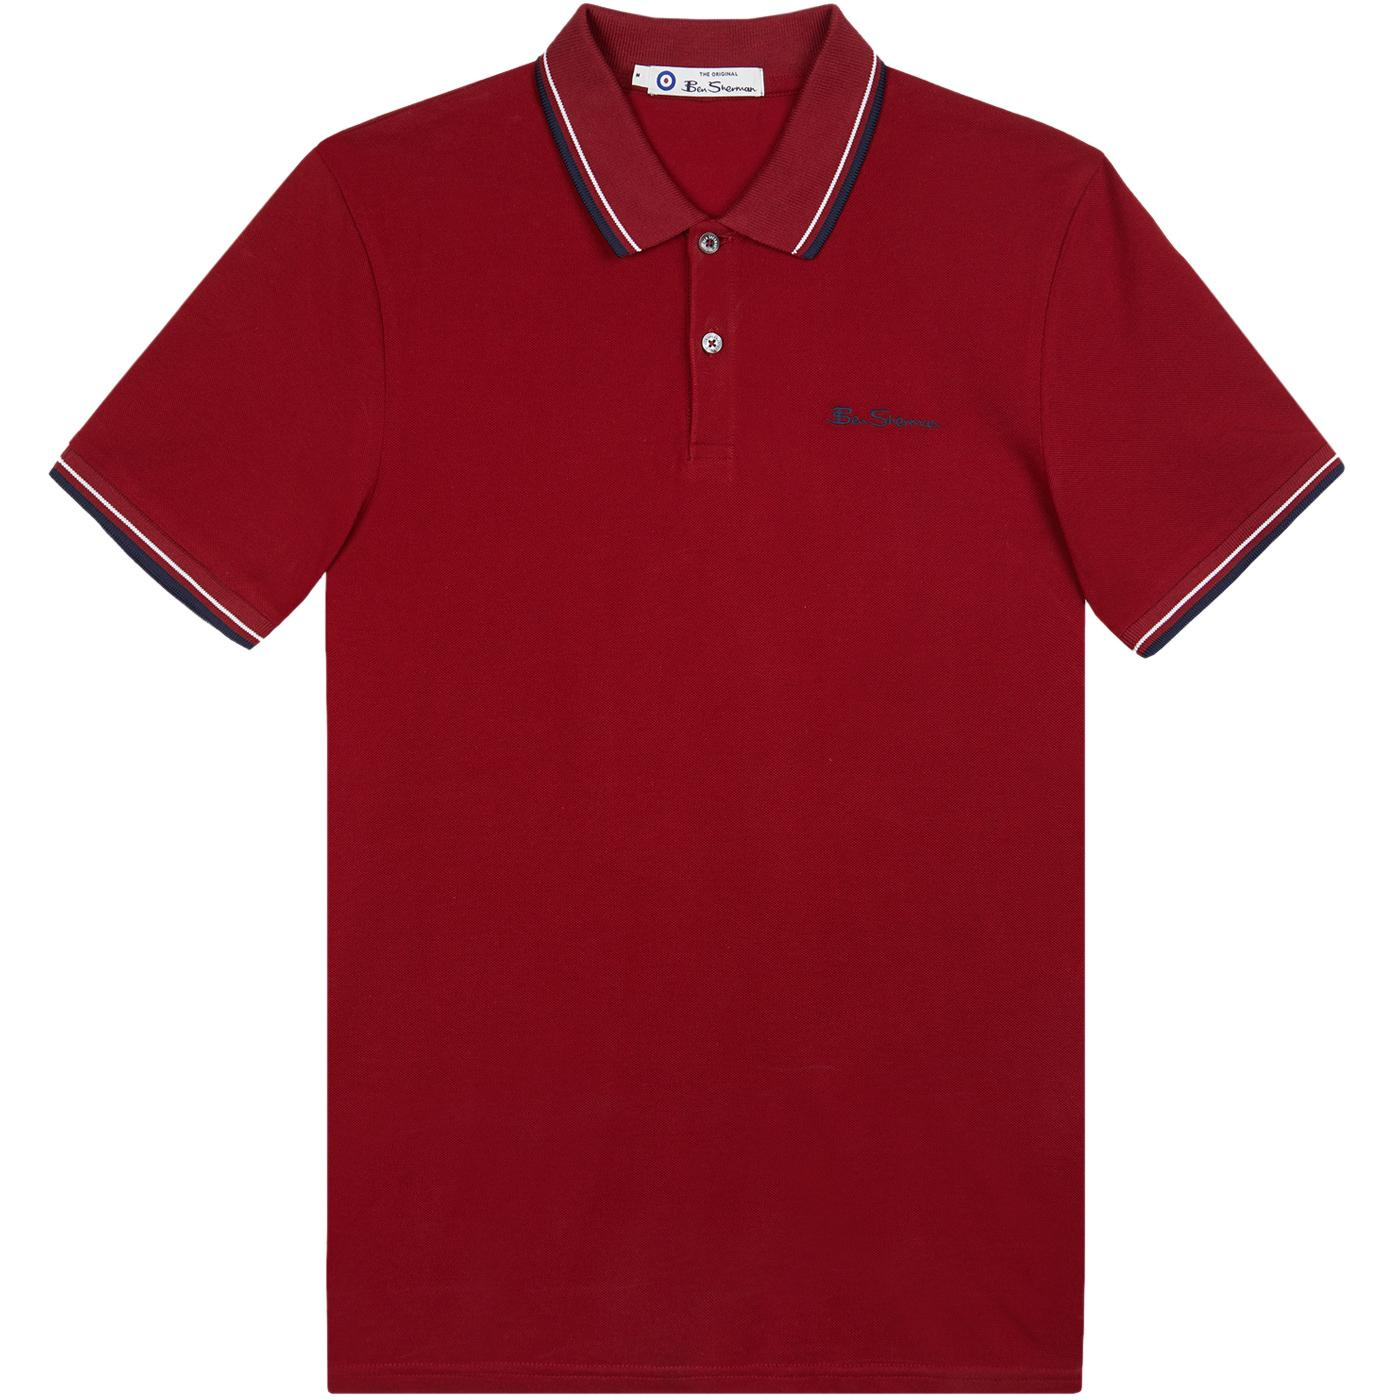 BEN SHERMAN Mod Tipped Signature Polo Top (Red)